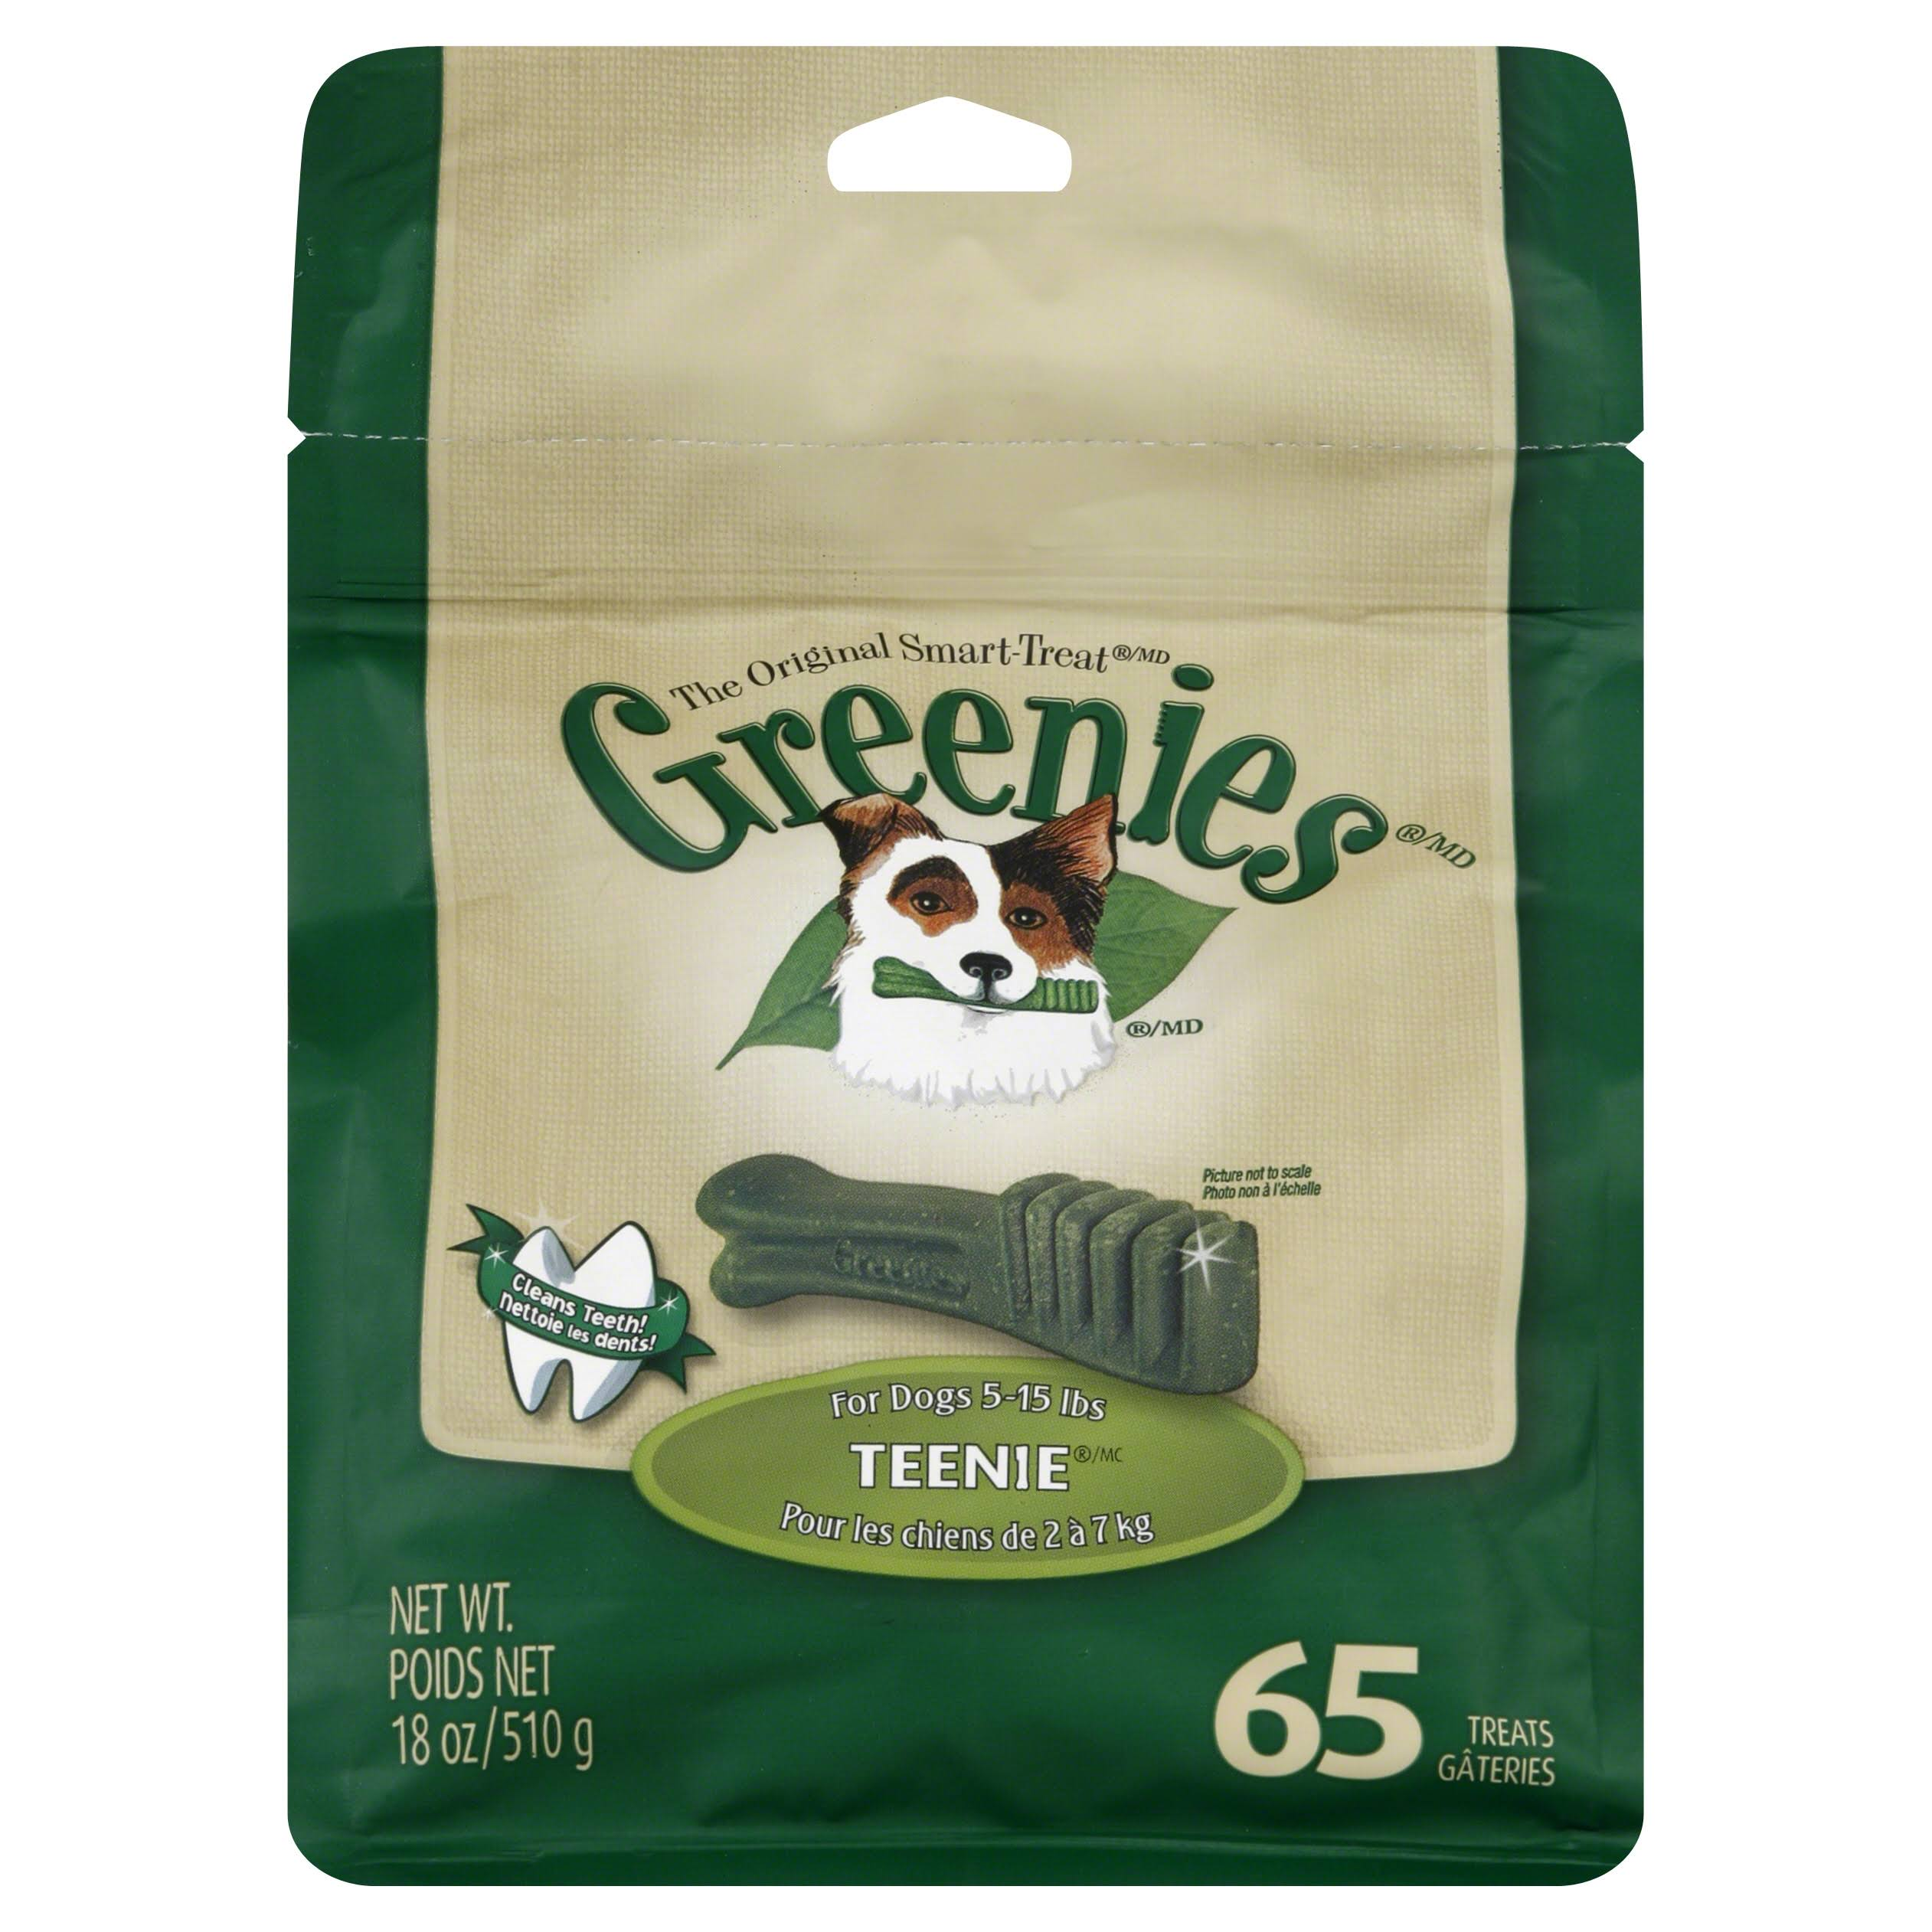 Greenies Dog Dental Chew Treats - Teenie, 18oz, 65 Treats